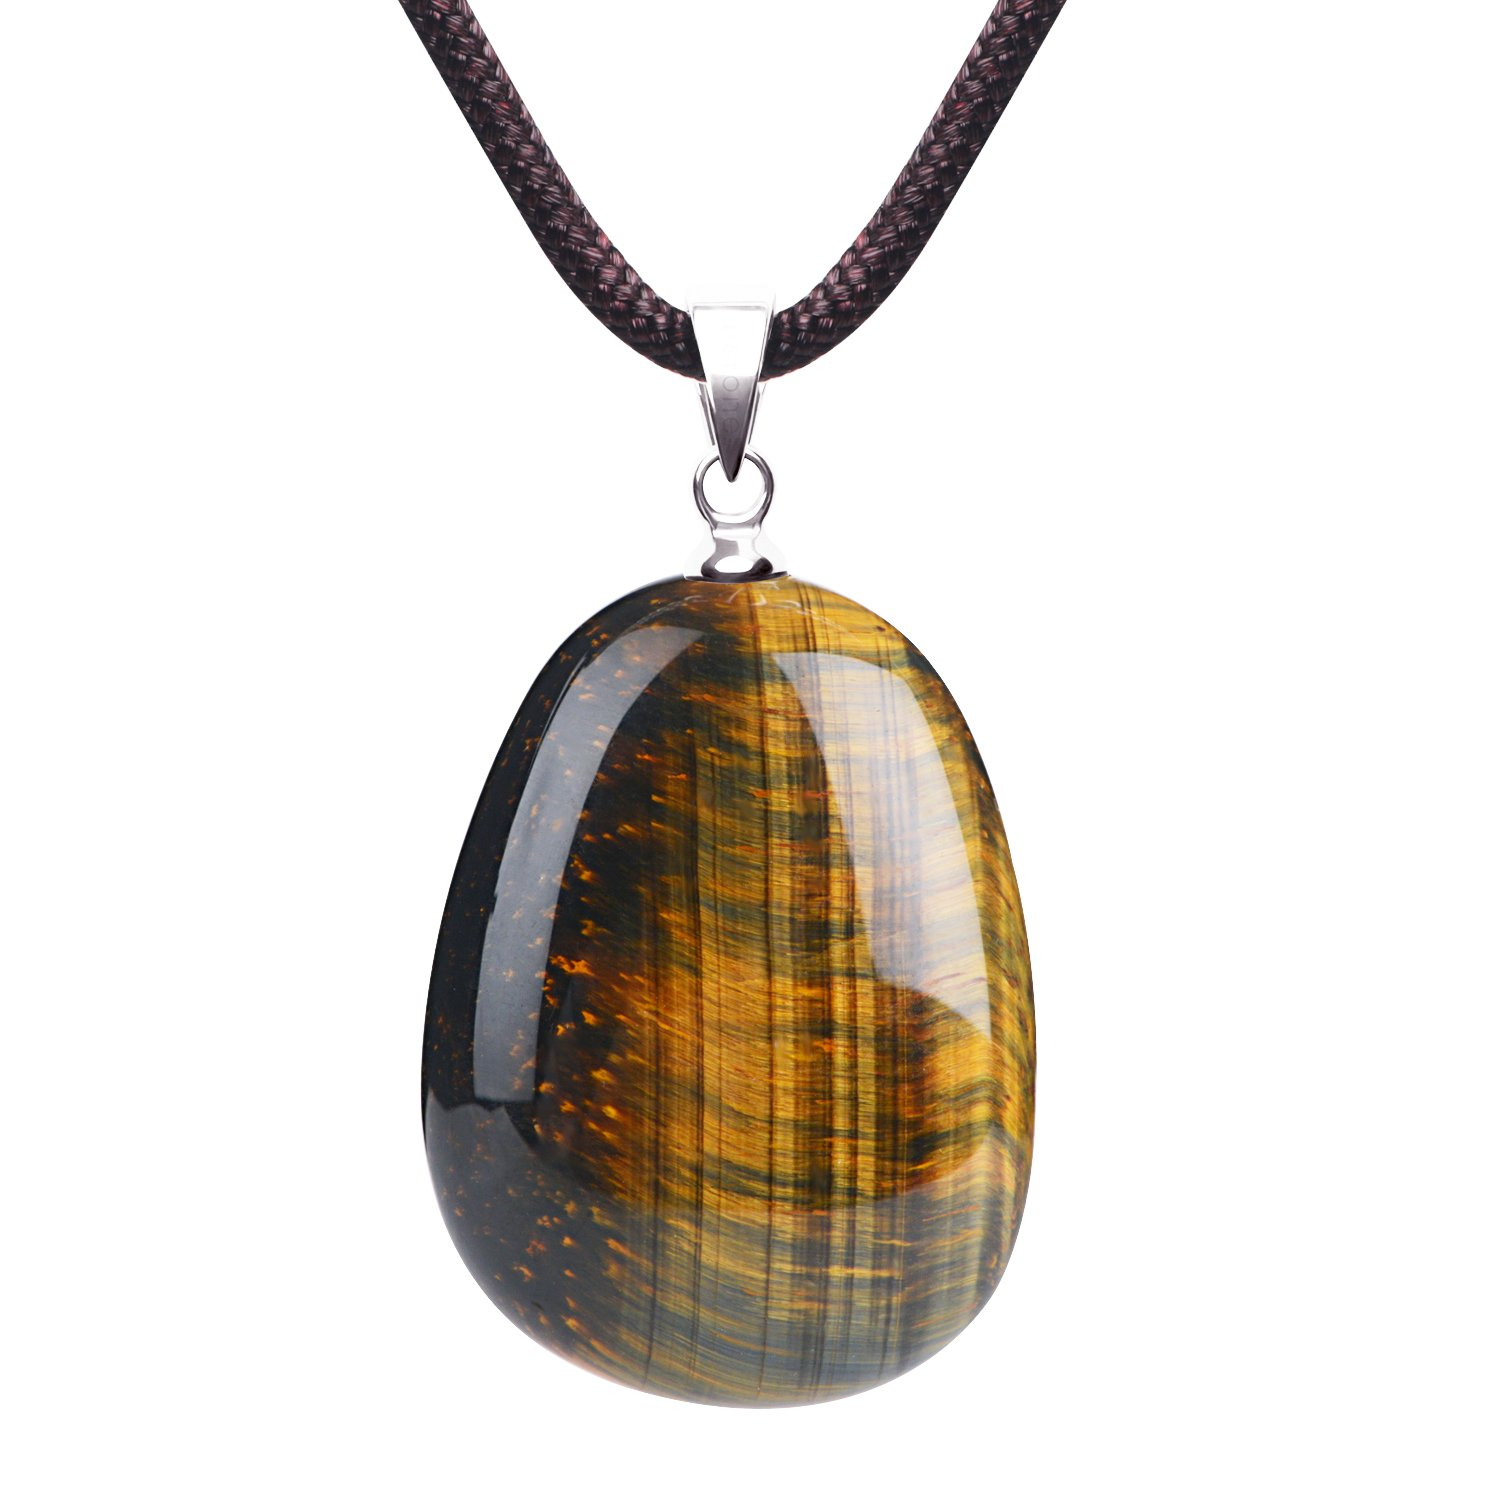 iSTONE Natural Gemstone Tiger's Eye Water Drop Lucky Birth Stone Pendant Necklace For Men & Women Rope Chain 18 Inch